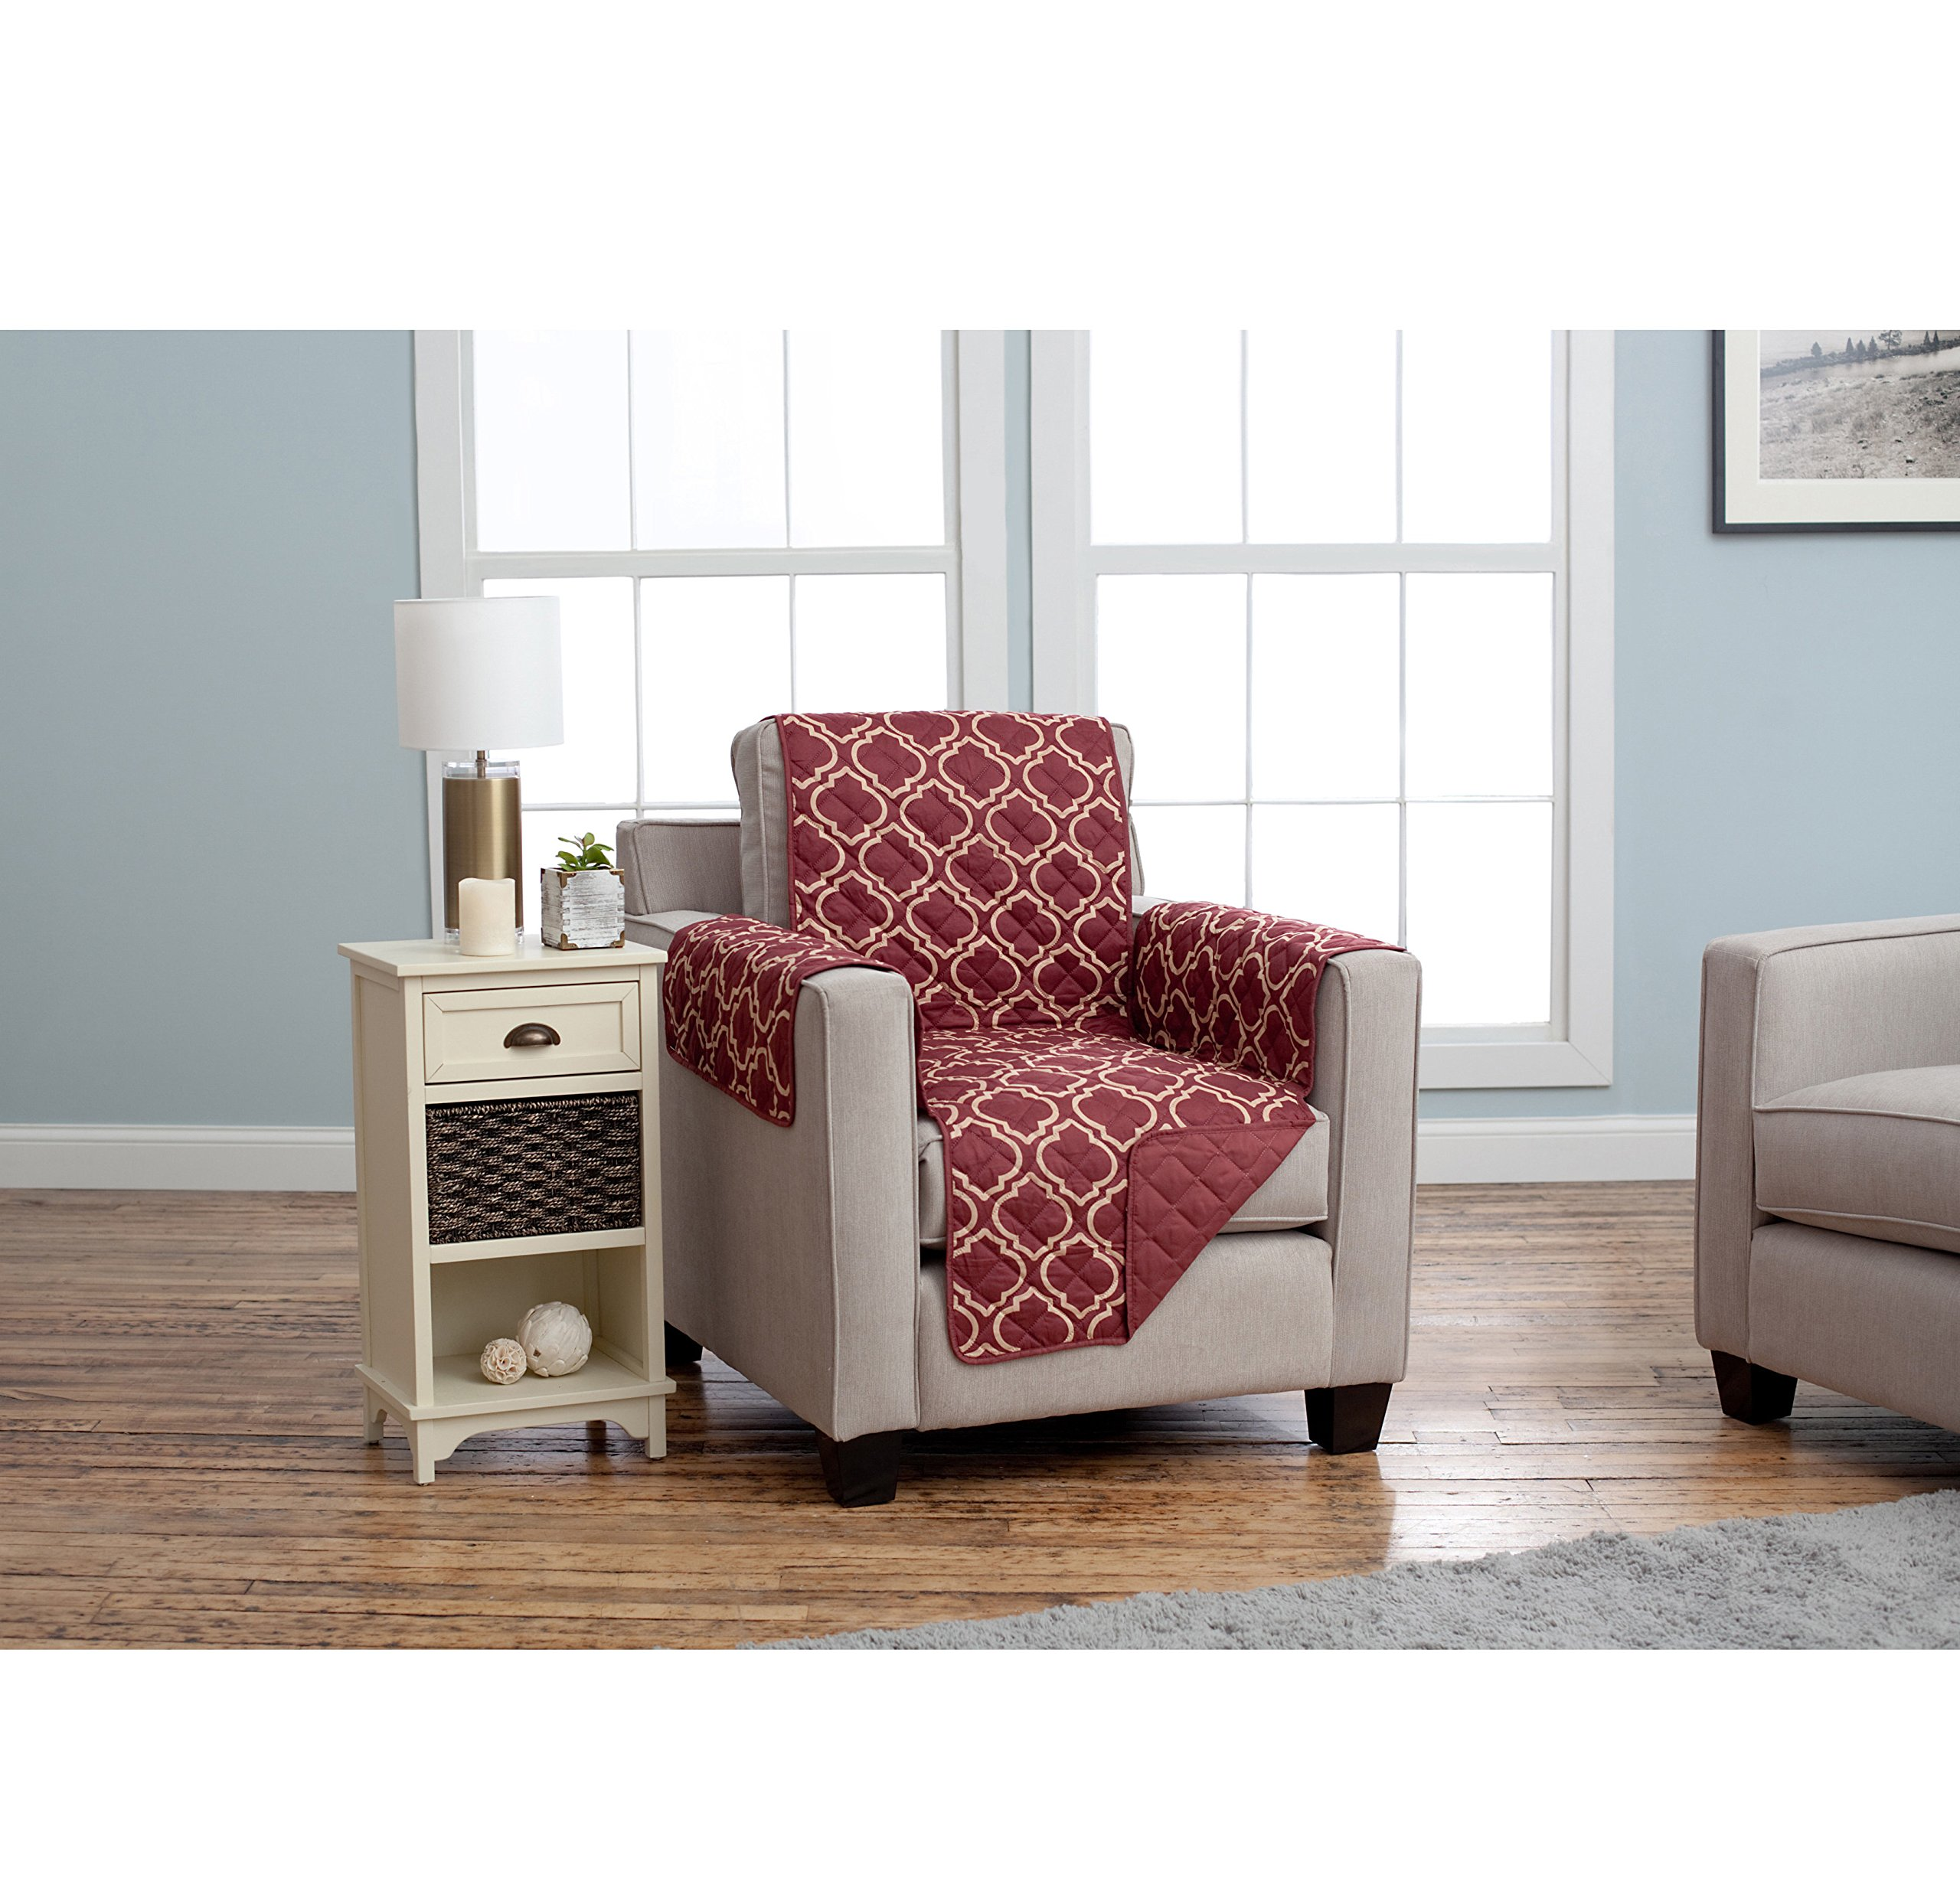 MN 1 Piece Burgundy Geometric Chair Protector, Medallion Shape Pattern Trellis Latice Chic Ikat Jacquard Modern Sleek Trendy Furniture Protection Covers Couch Protection Cover Pets Animals, Polyester